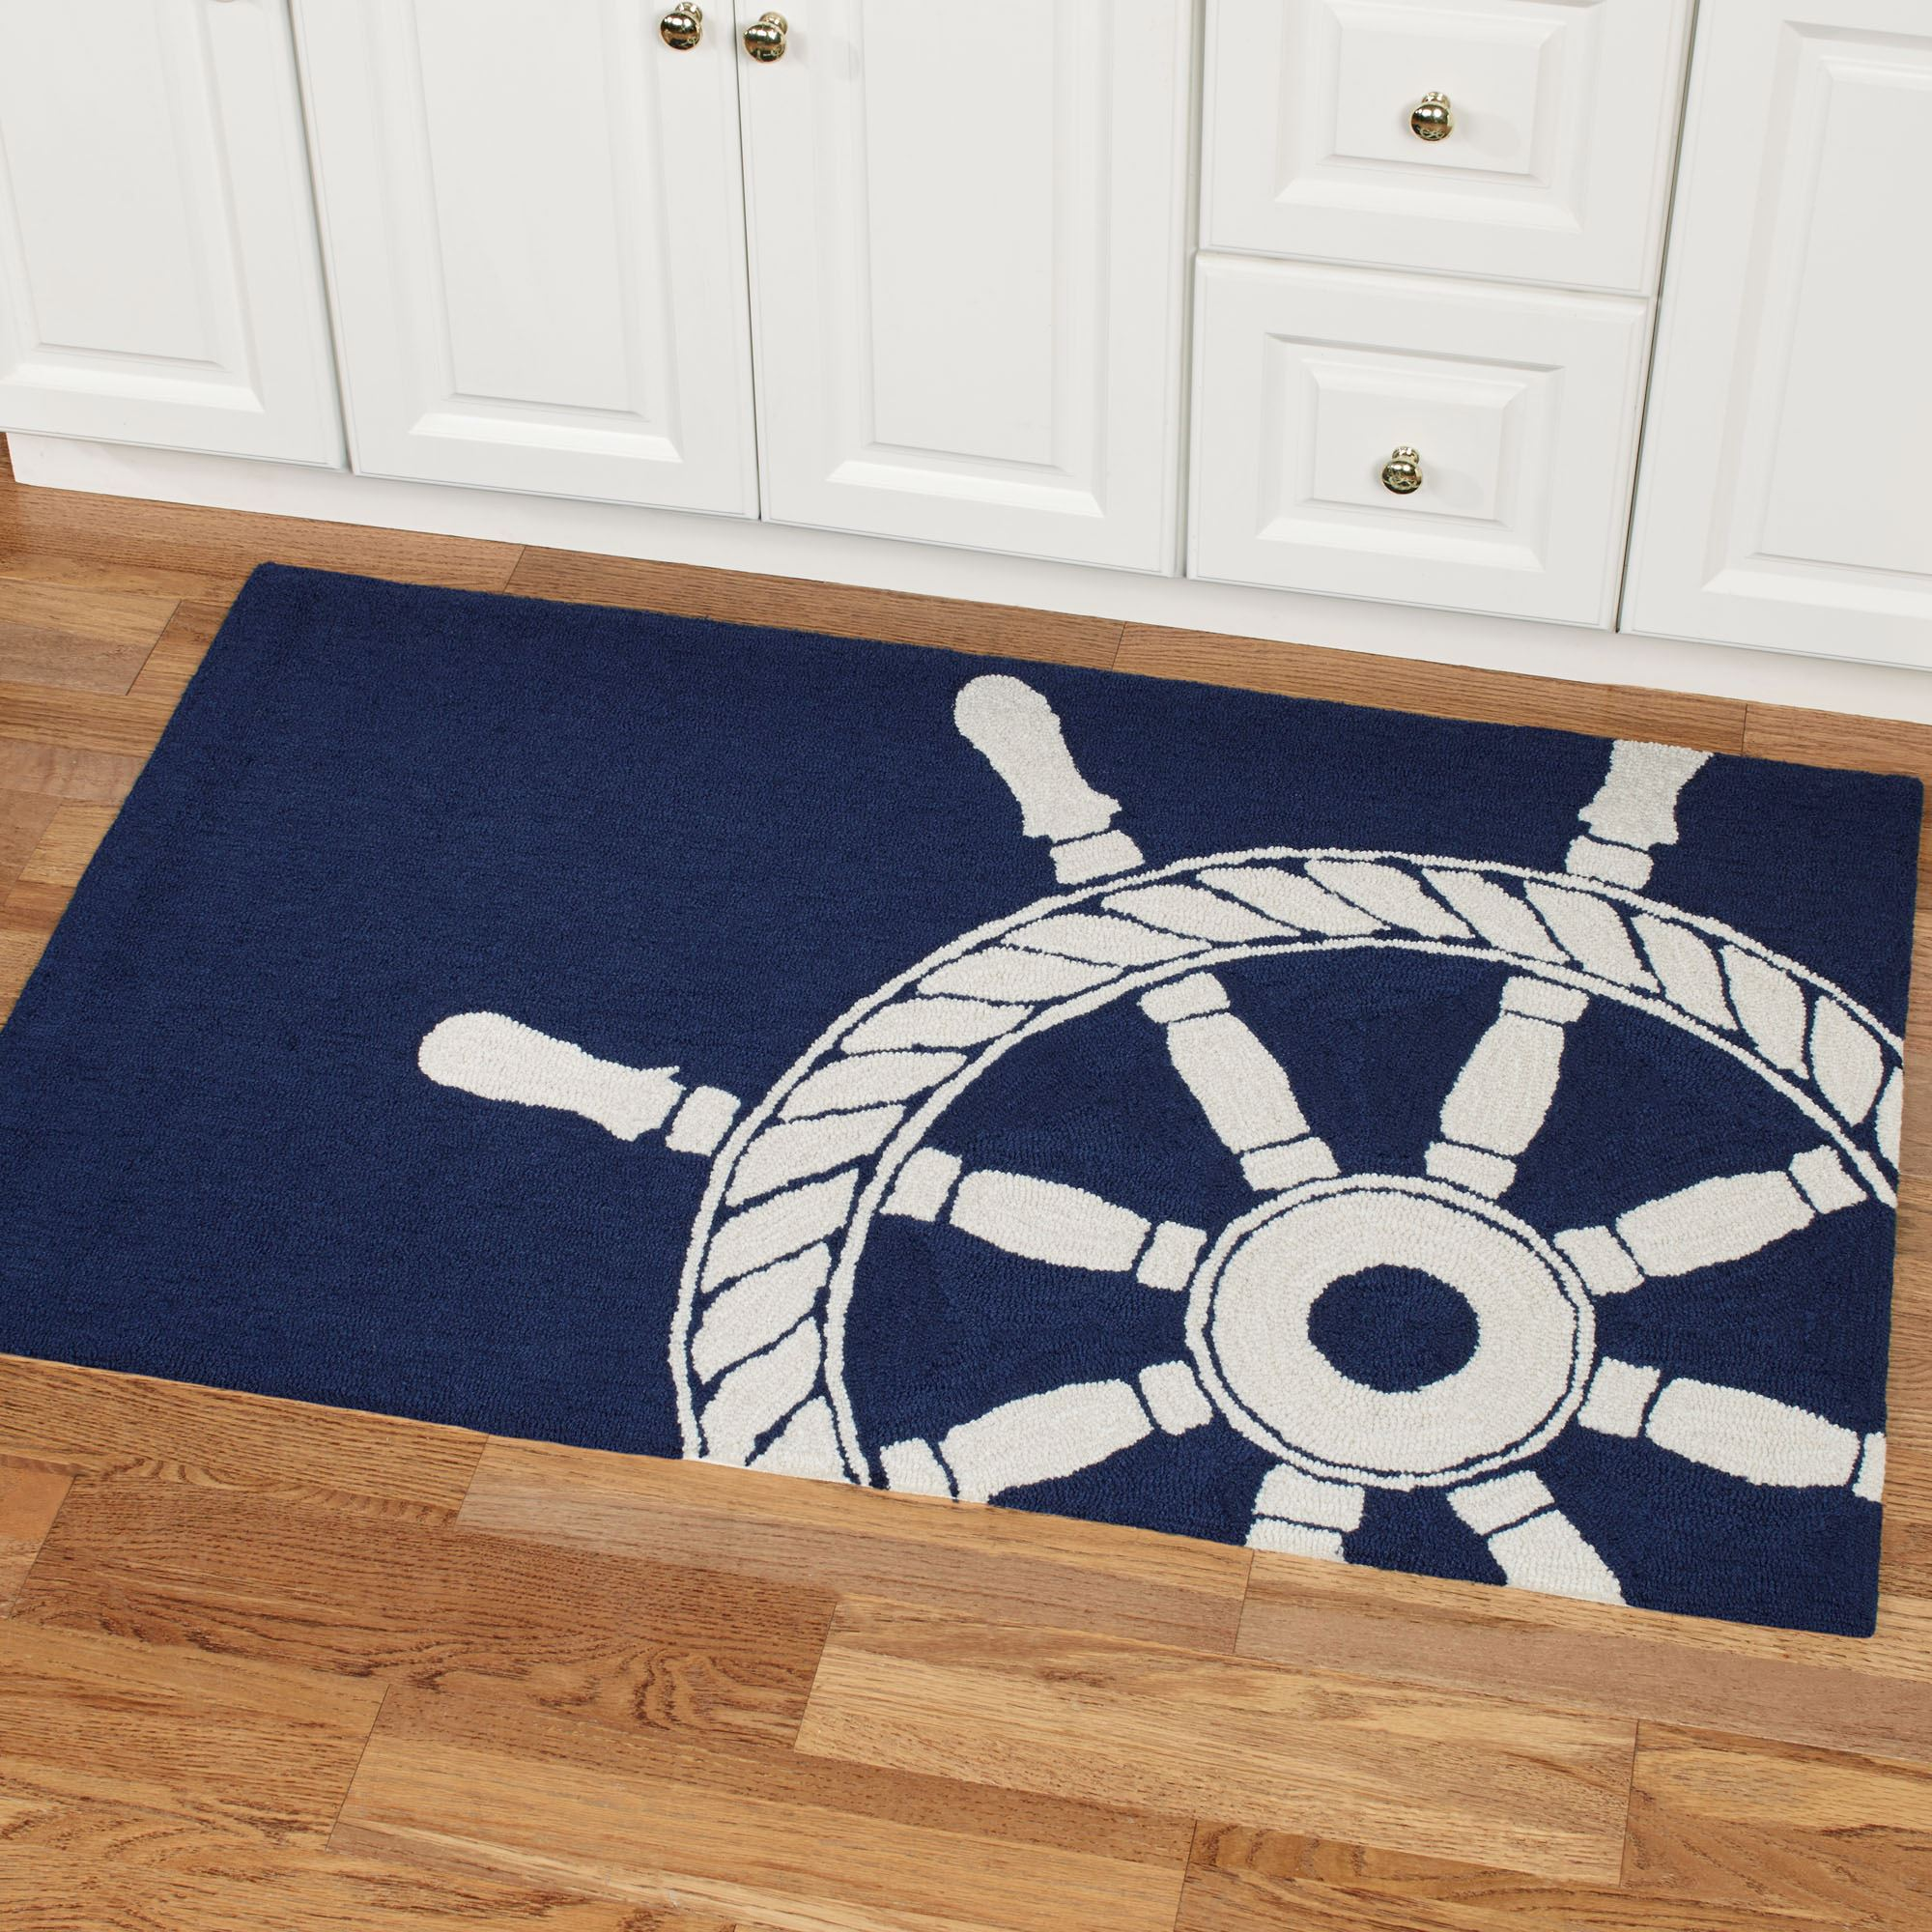 Nautical Rugs Make Your Home A Beach House